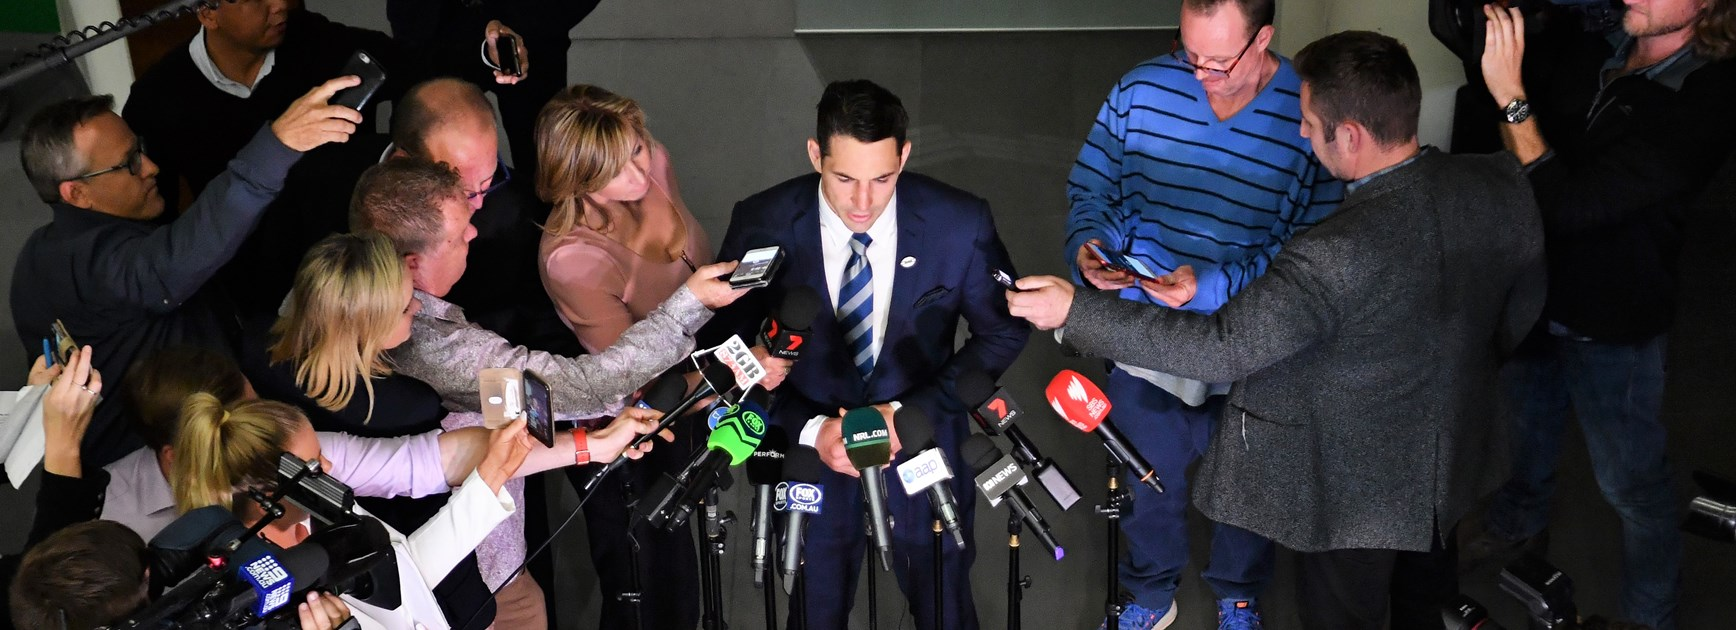 Billy Slater addresses the media following his successful judiciary hearing.